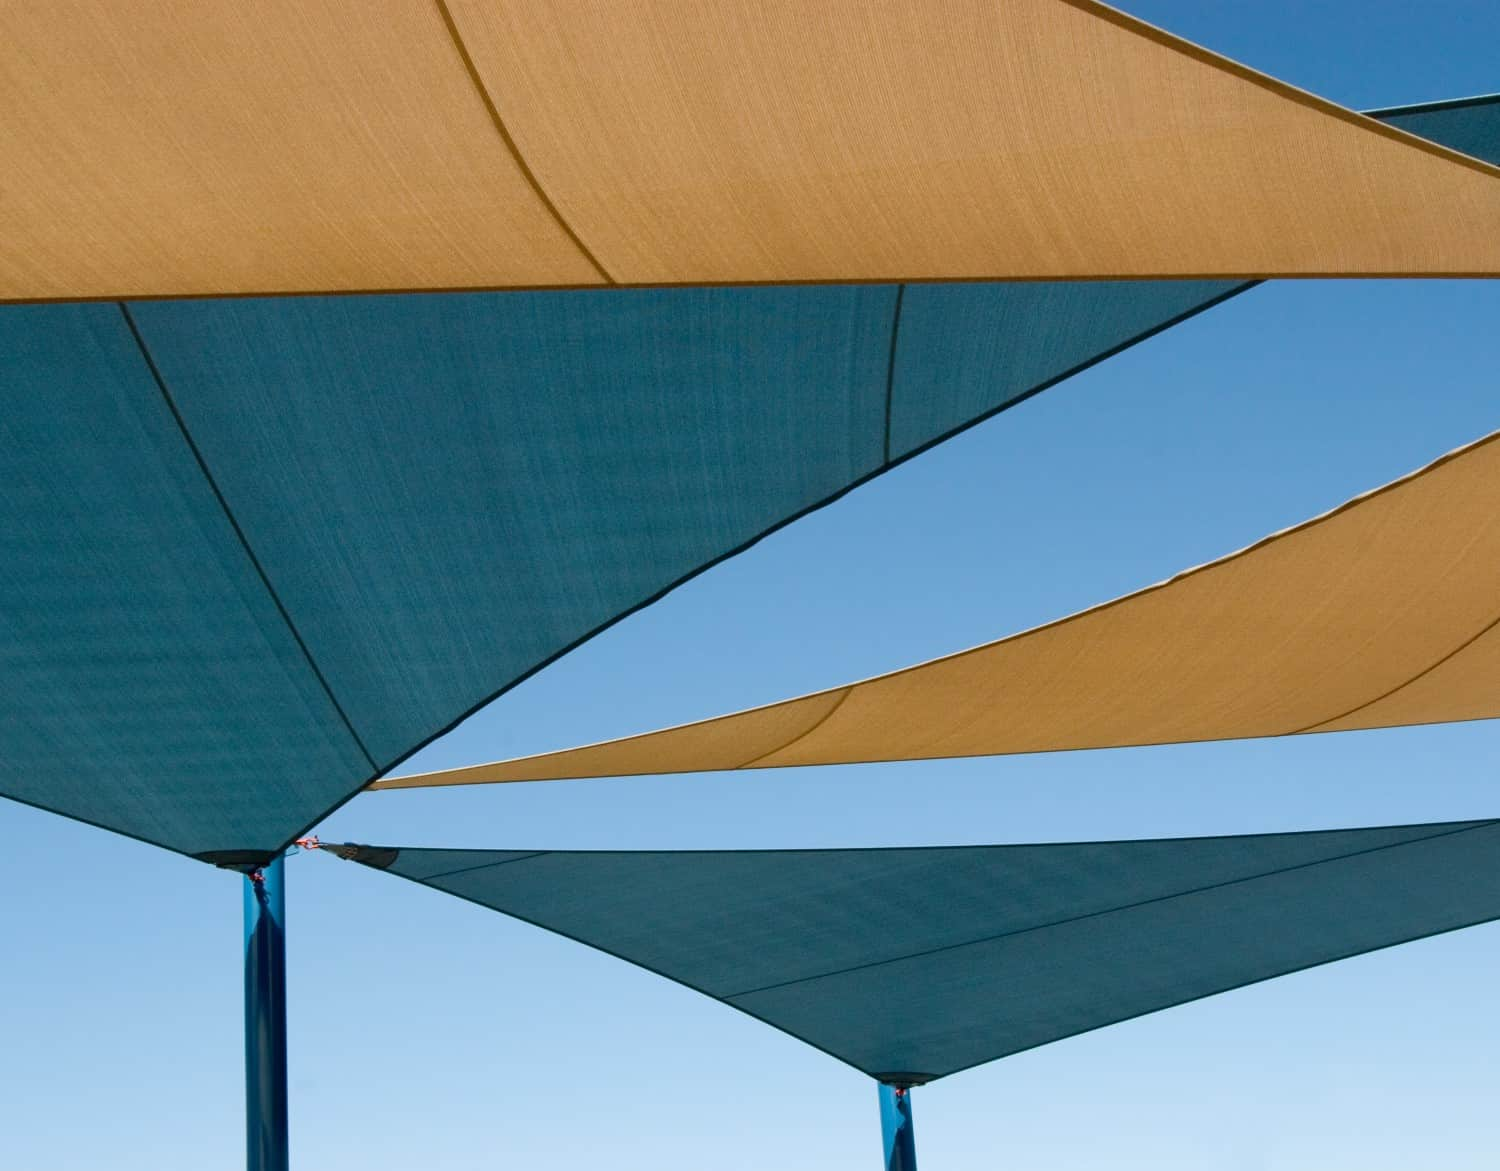 stock-photo-shade-structure-over-playground-in-las-vegas-nevada-2319554